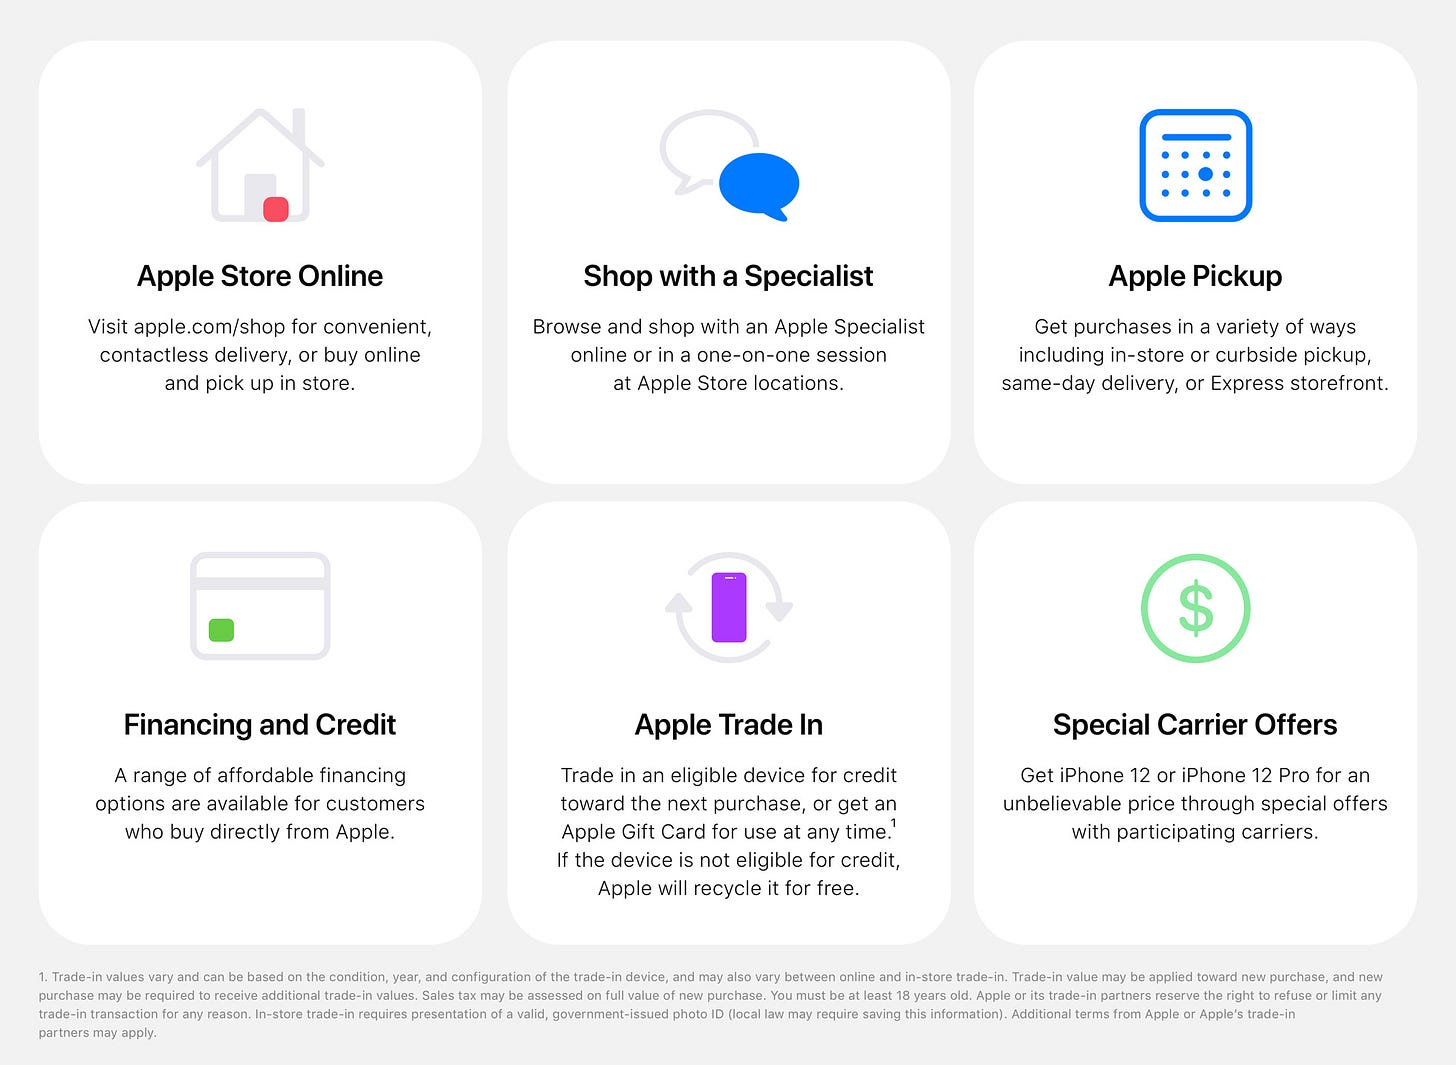 Apple_new-ways-to-shop-for-iPadAir-iPhone12Pro-iPhone12-infographic_10212020.jpg